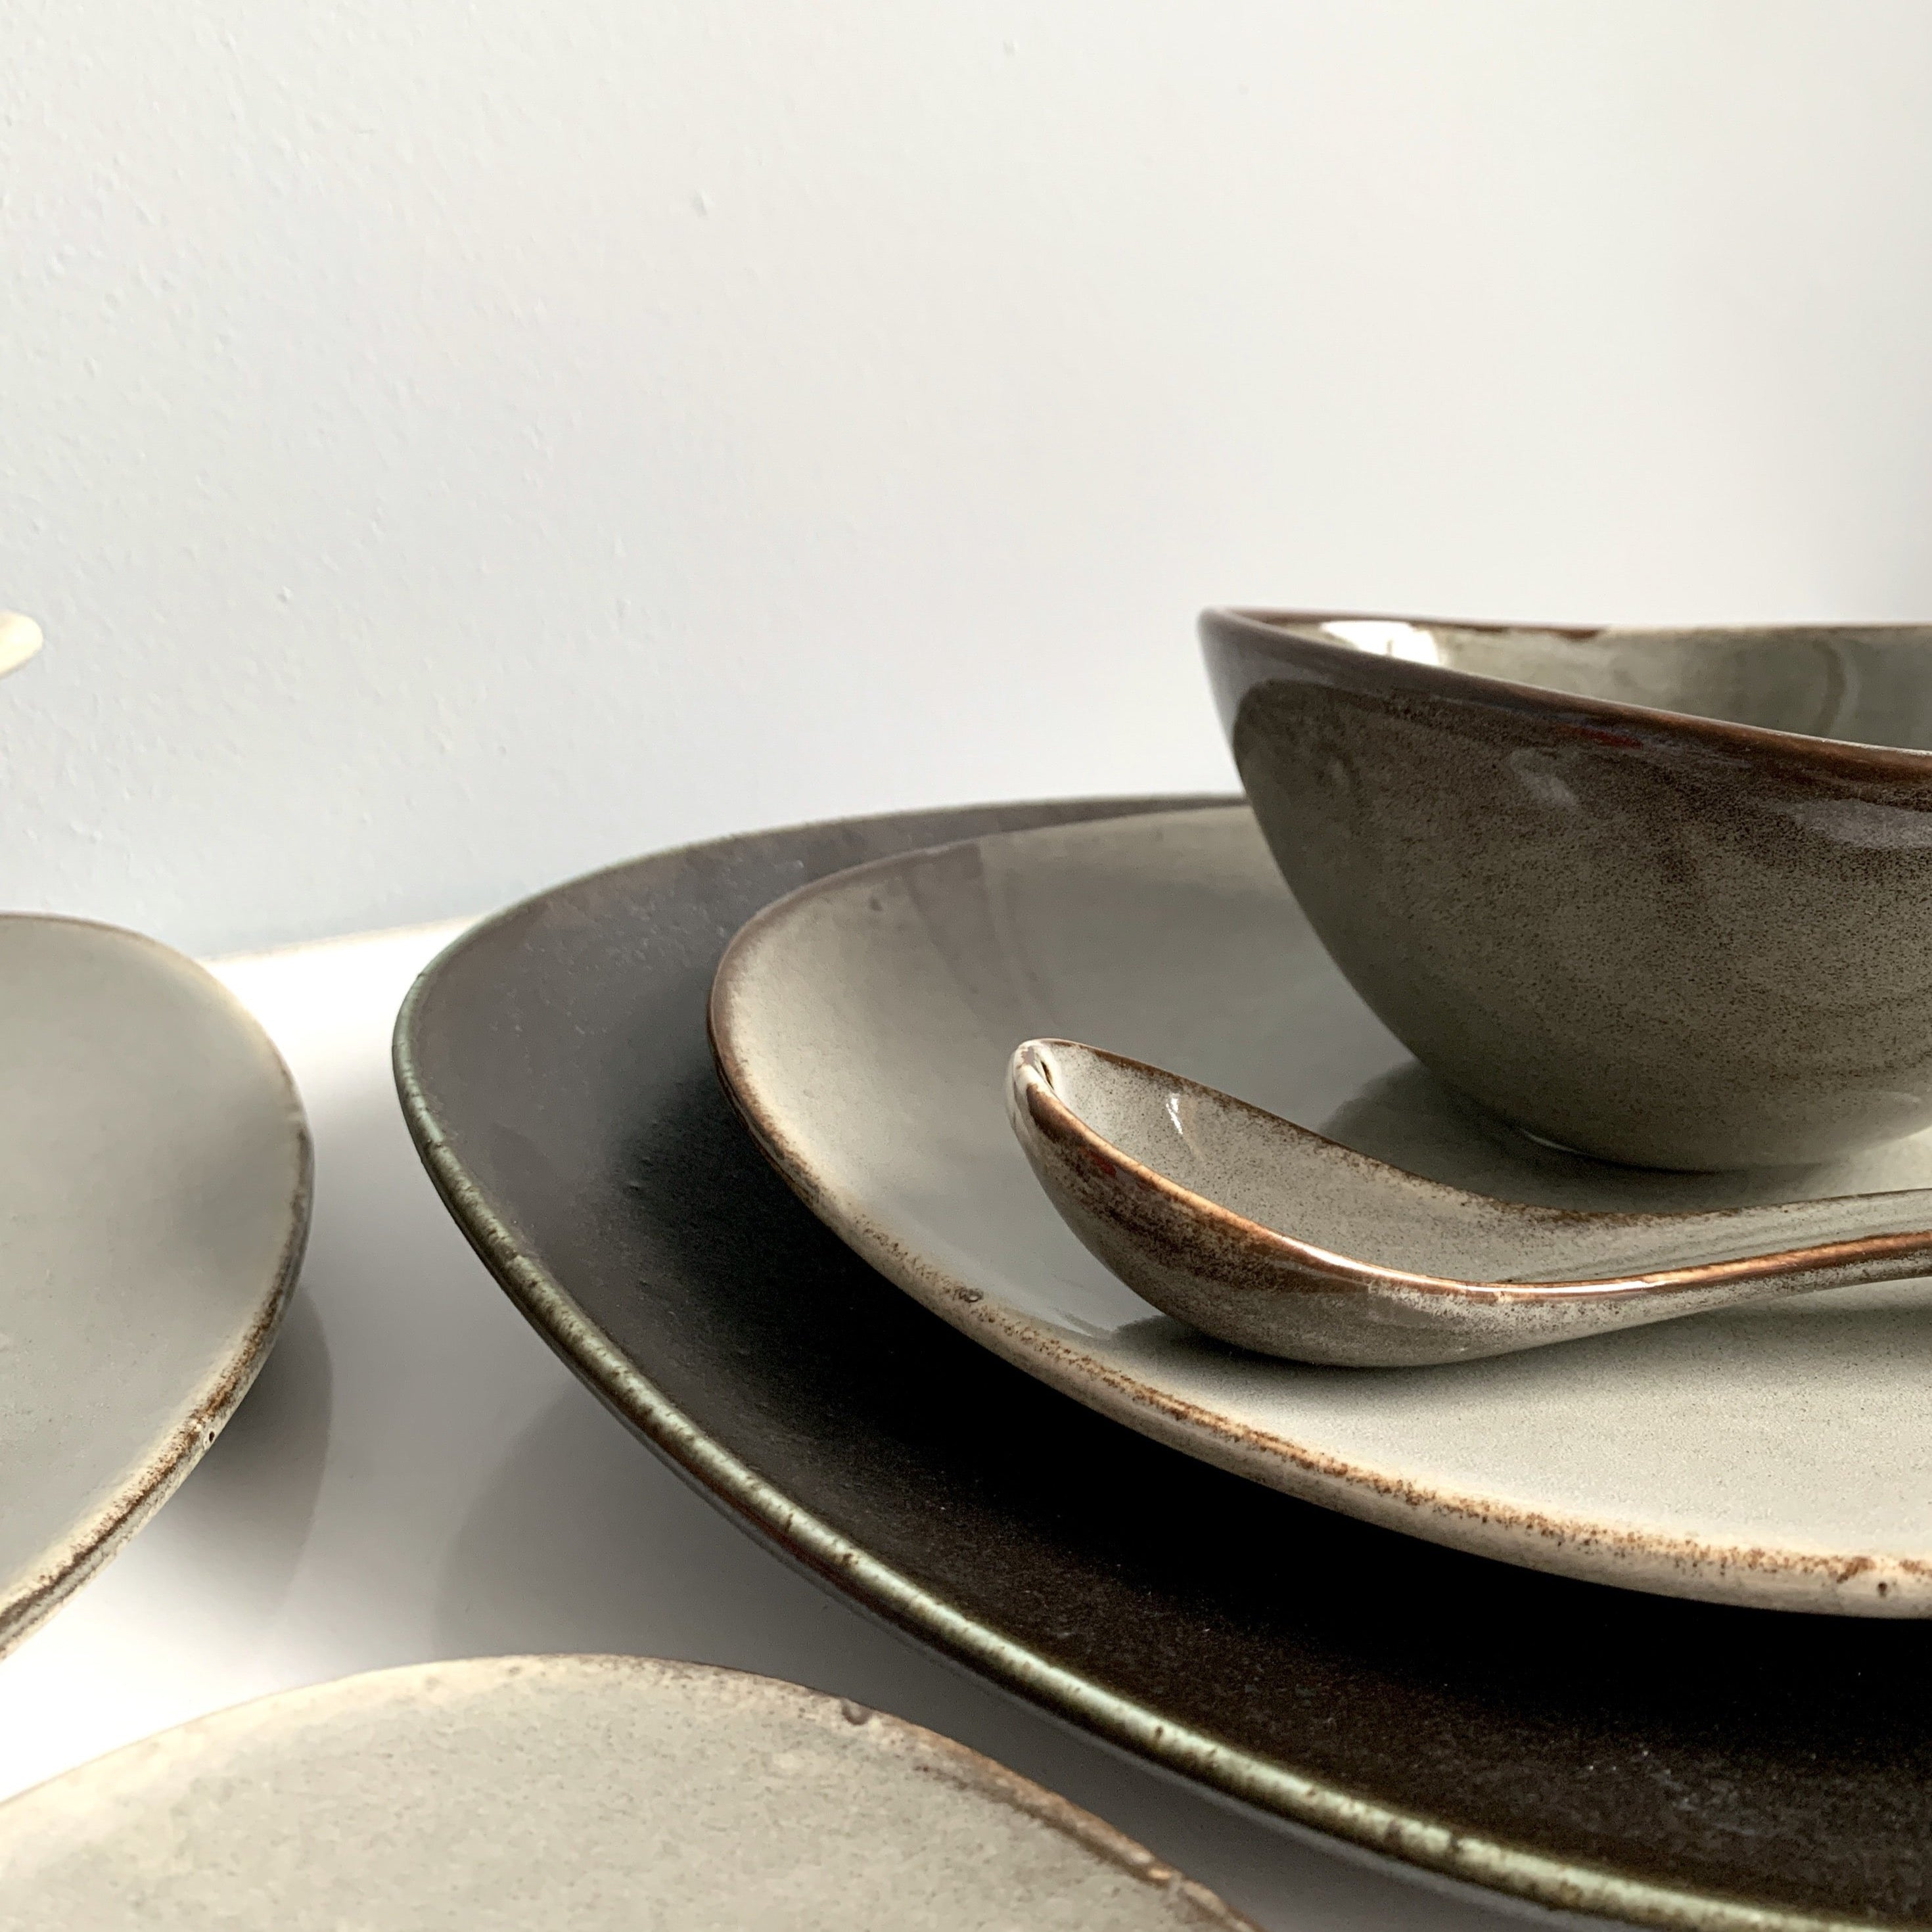 unique asymmetrical dinnerware set - serving and sharing plate set in grey and black